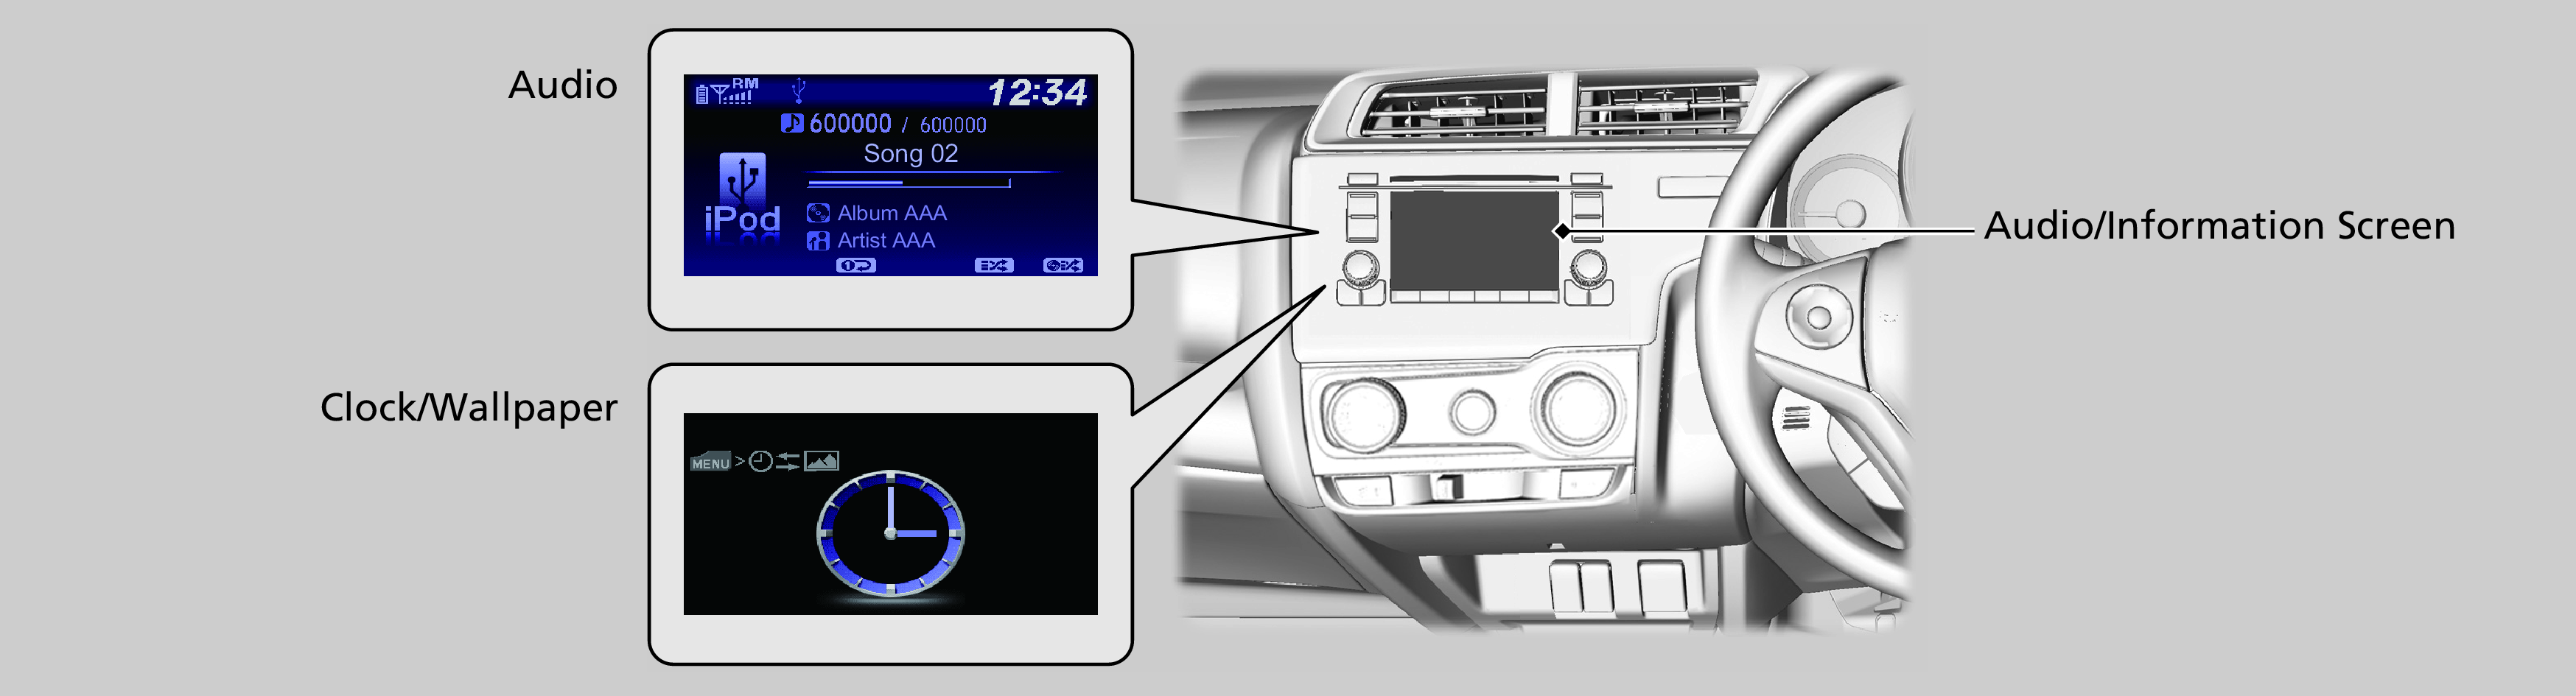 Audio/Information Screen(Models with colour audio system